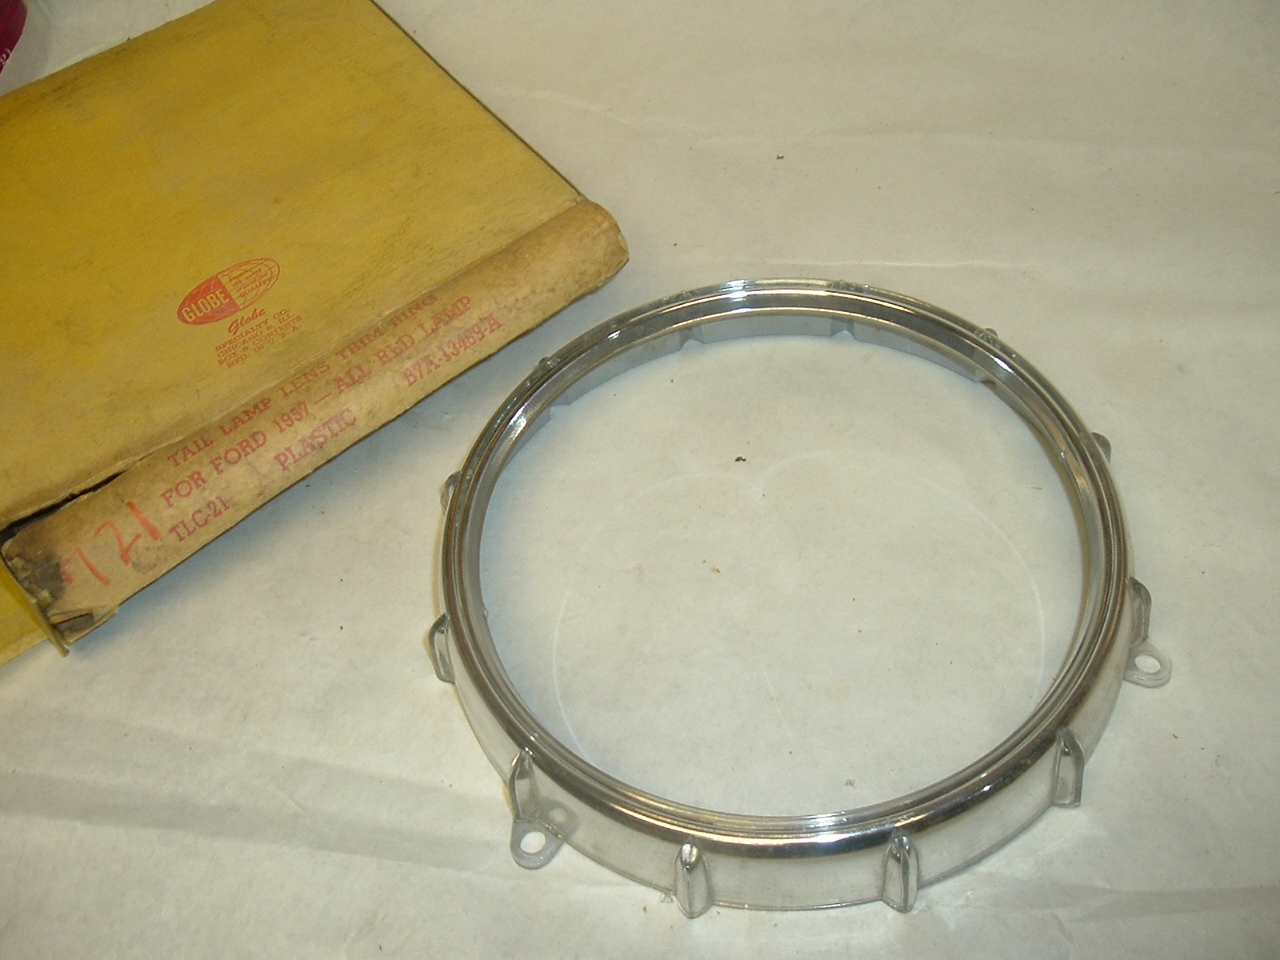 1957 Ford tail lamp chrome retainer ring